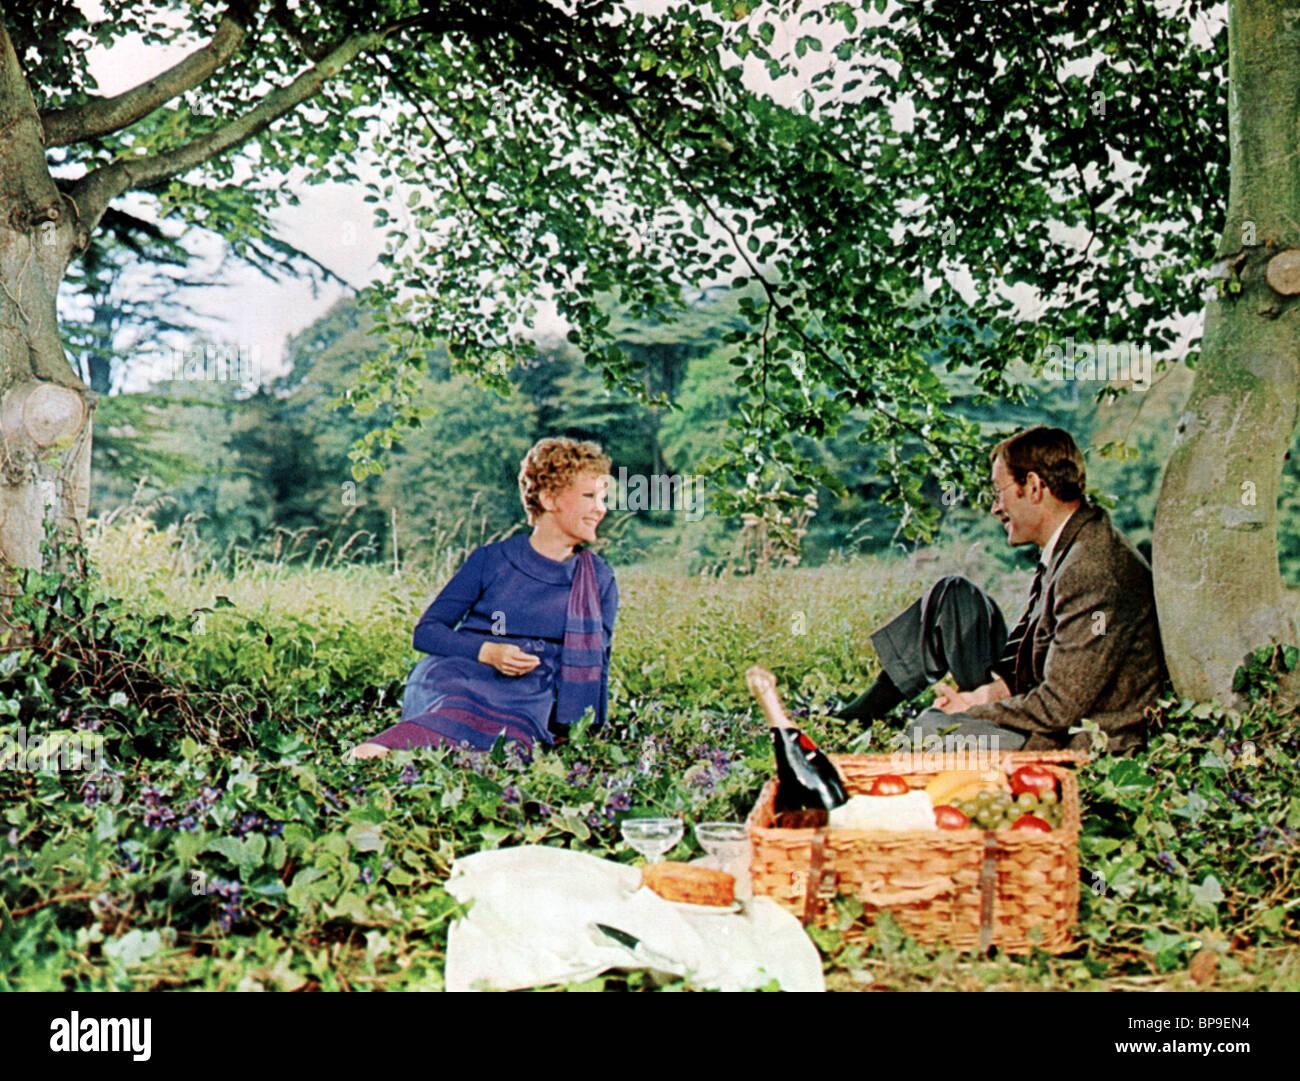 PETULA CLARK, PETER O'TOOLE, GOODBYE  MR. CHIPS, 1969 - Stock Image